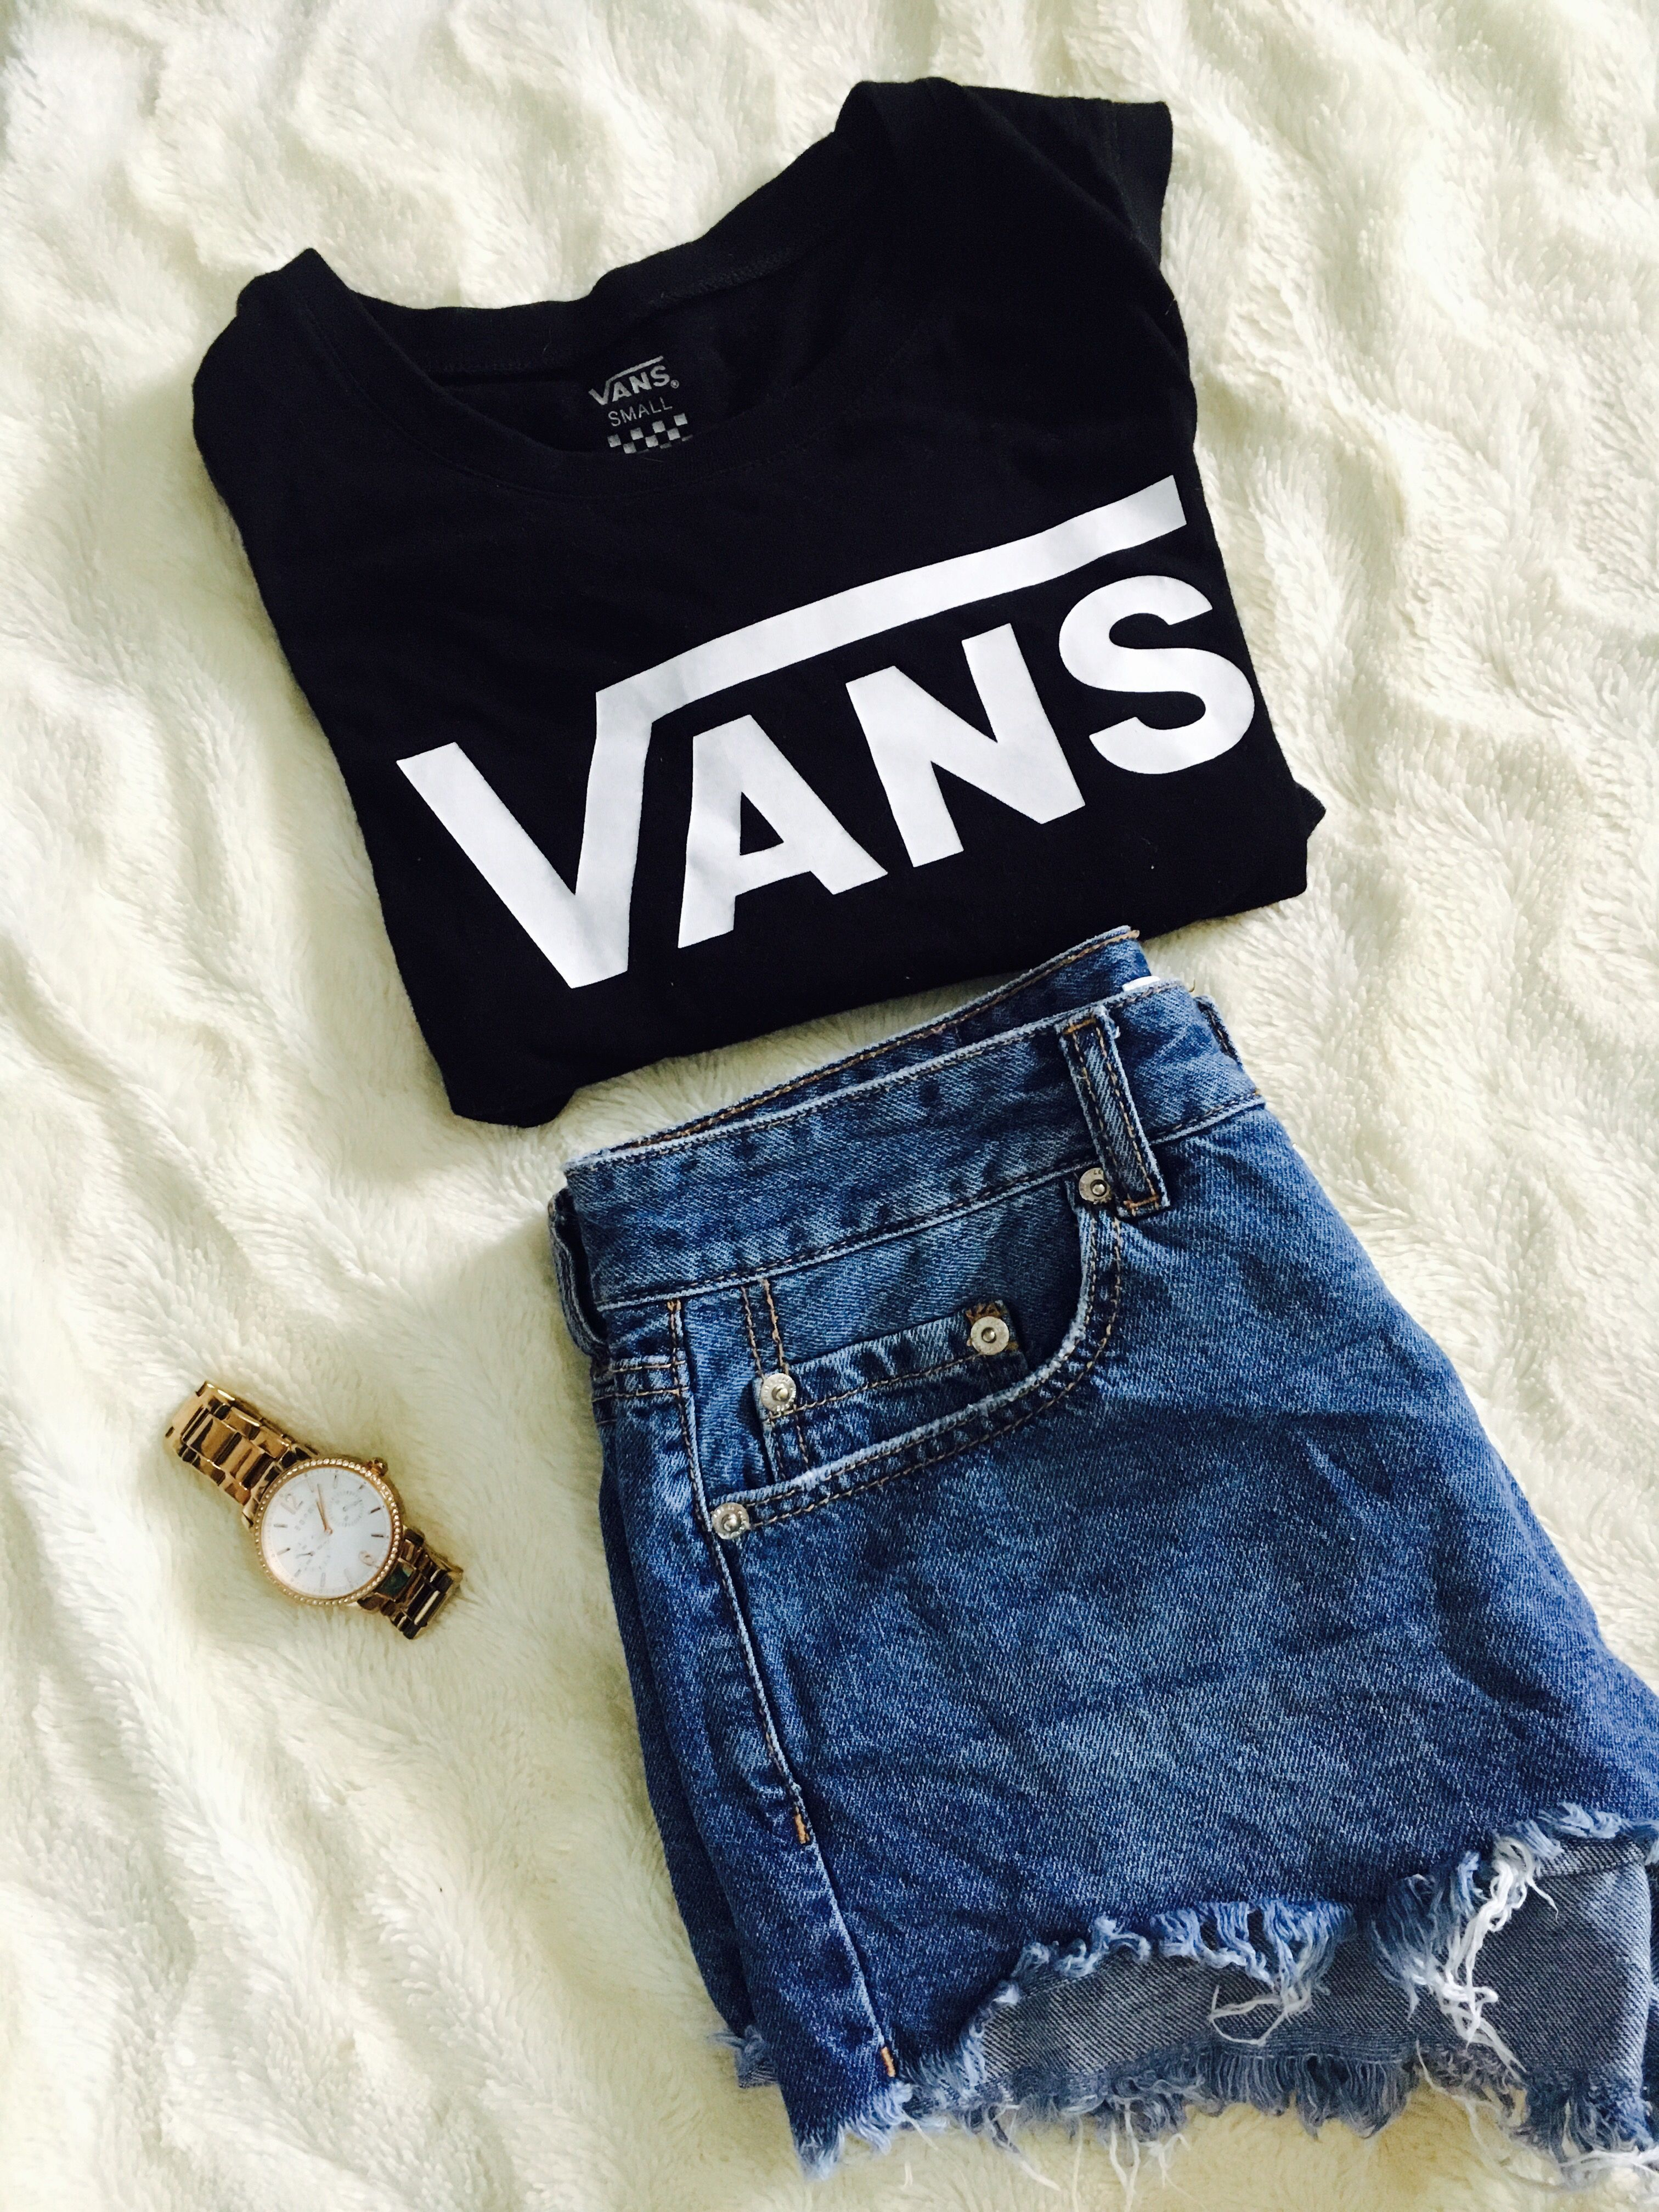 Paired with jeans or shorts, these #vans are a summer staple